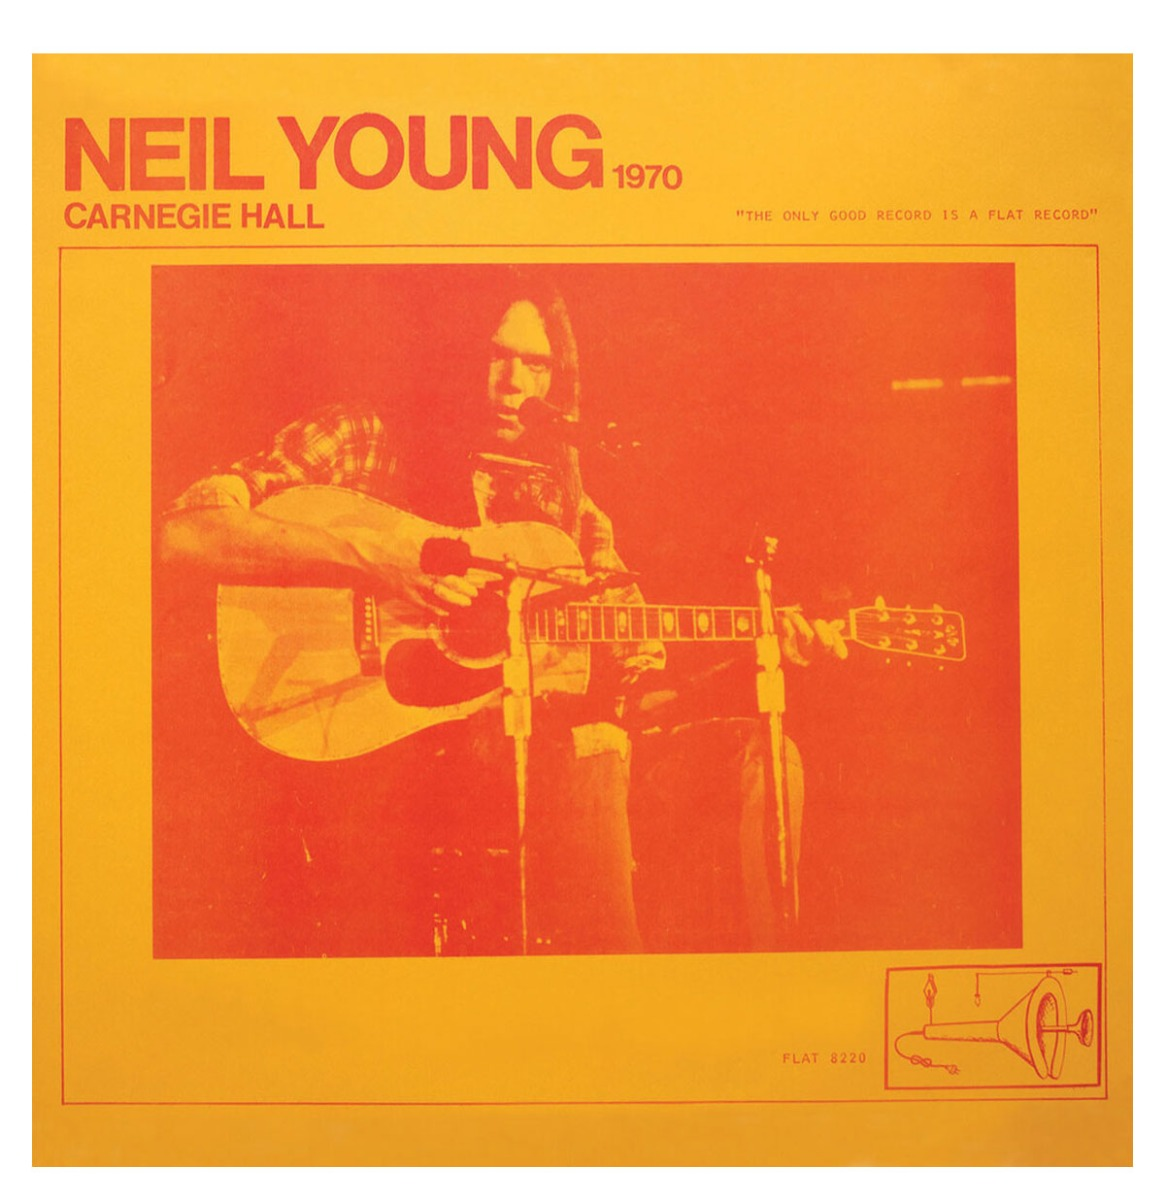 Neil Young - Carnegie Hall 1970 2LP